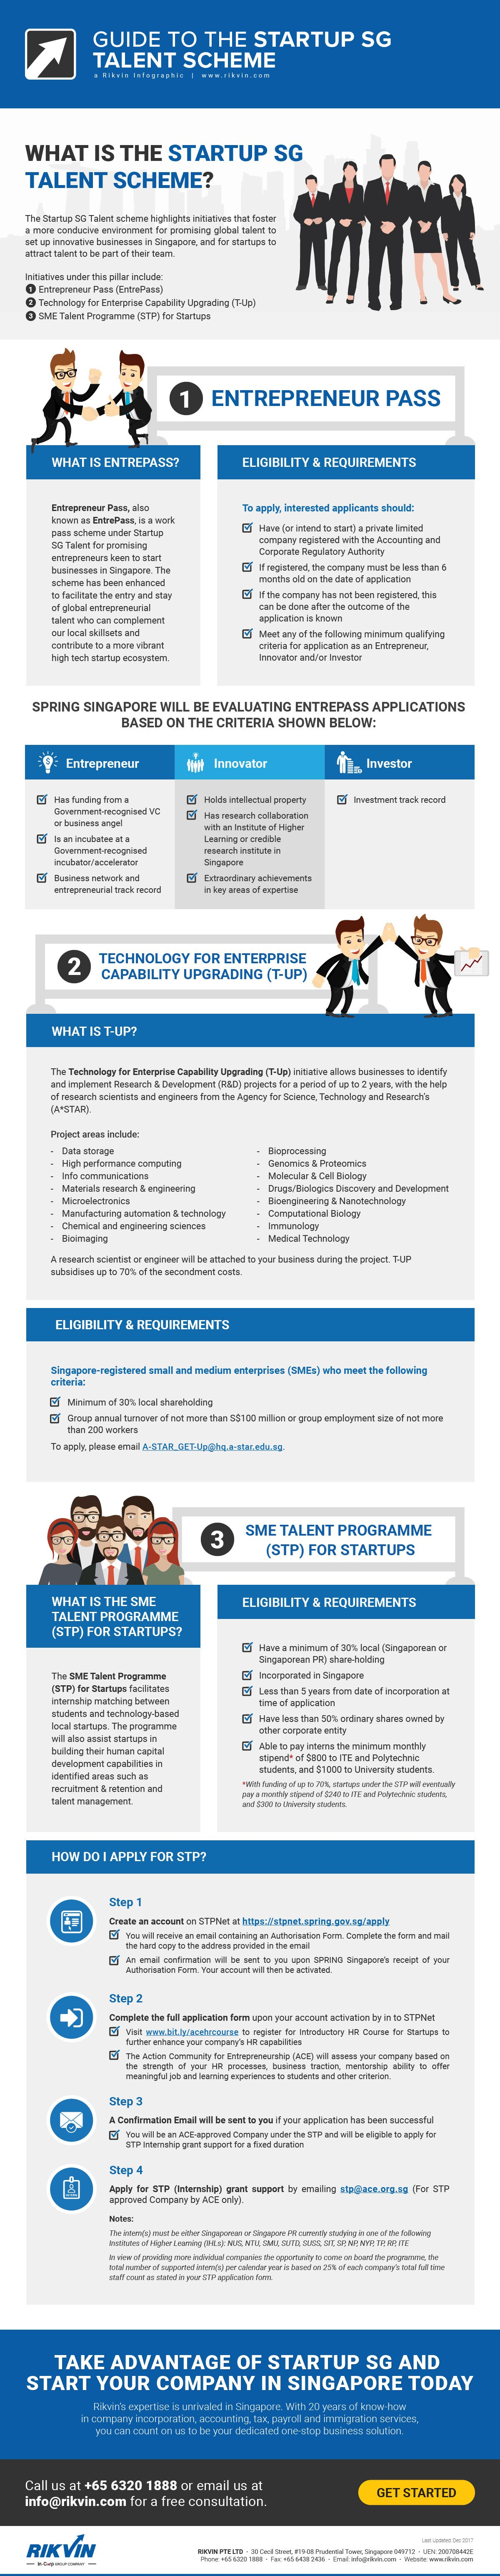 Guide to the Startup SG Talent Scheme - Rikvin Pte Ltd